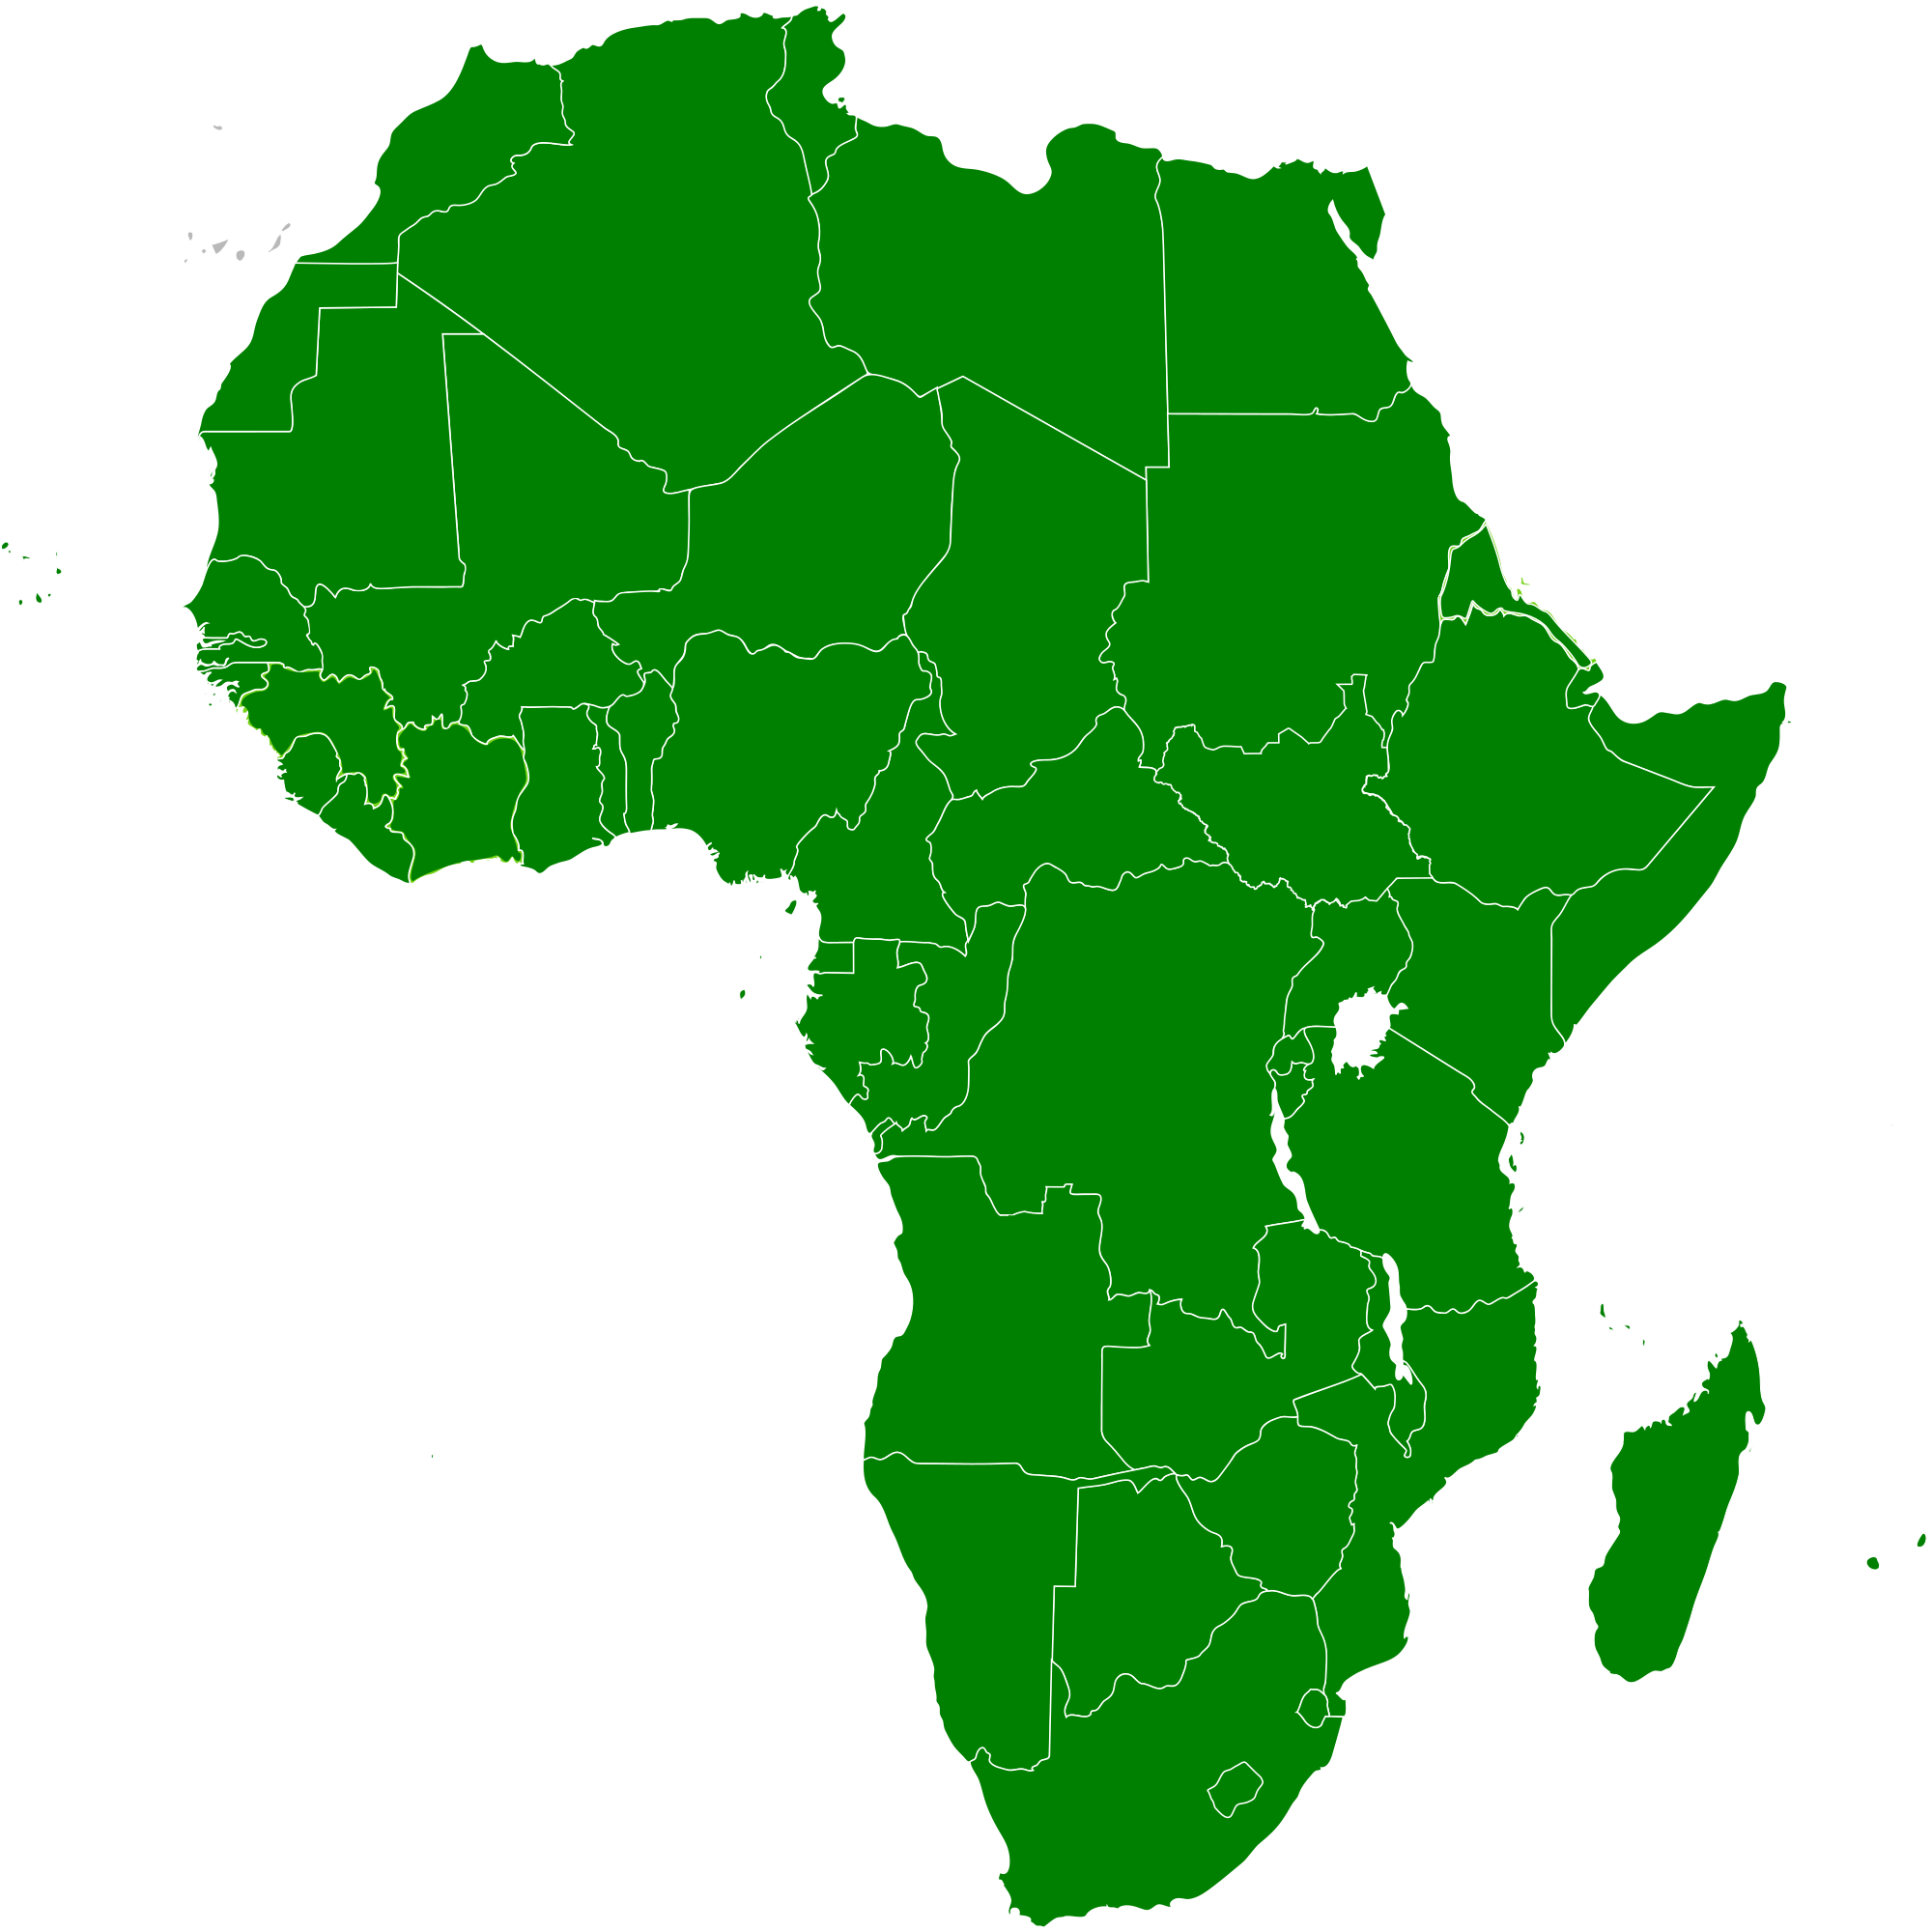 Africa map png. File of the african